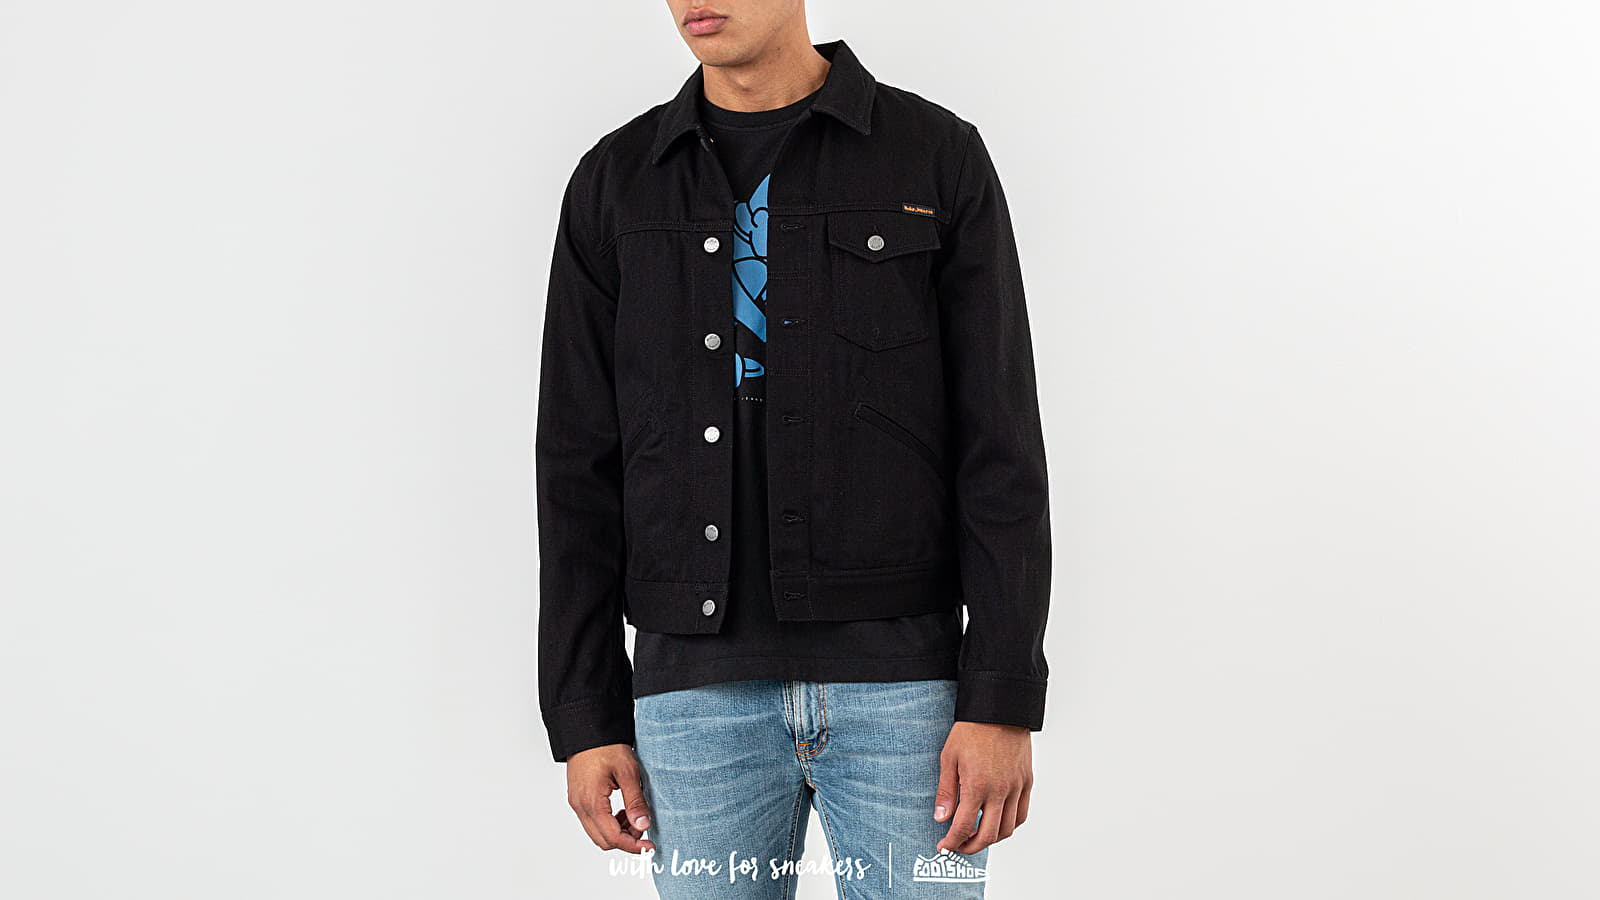 Bundy Nudie Jeans Tommy Dry Twill Jacket Black